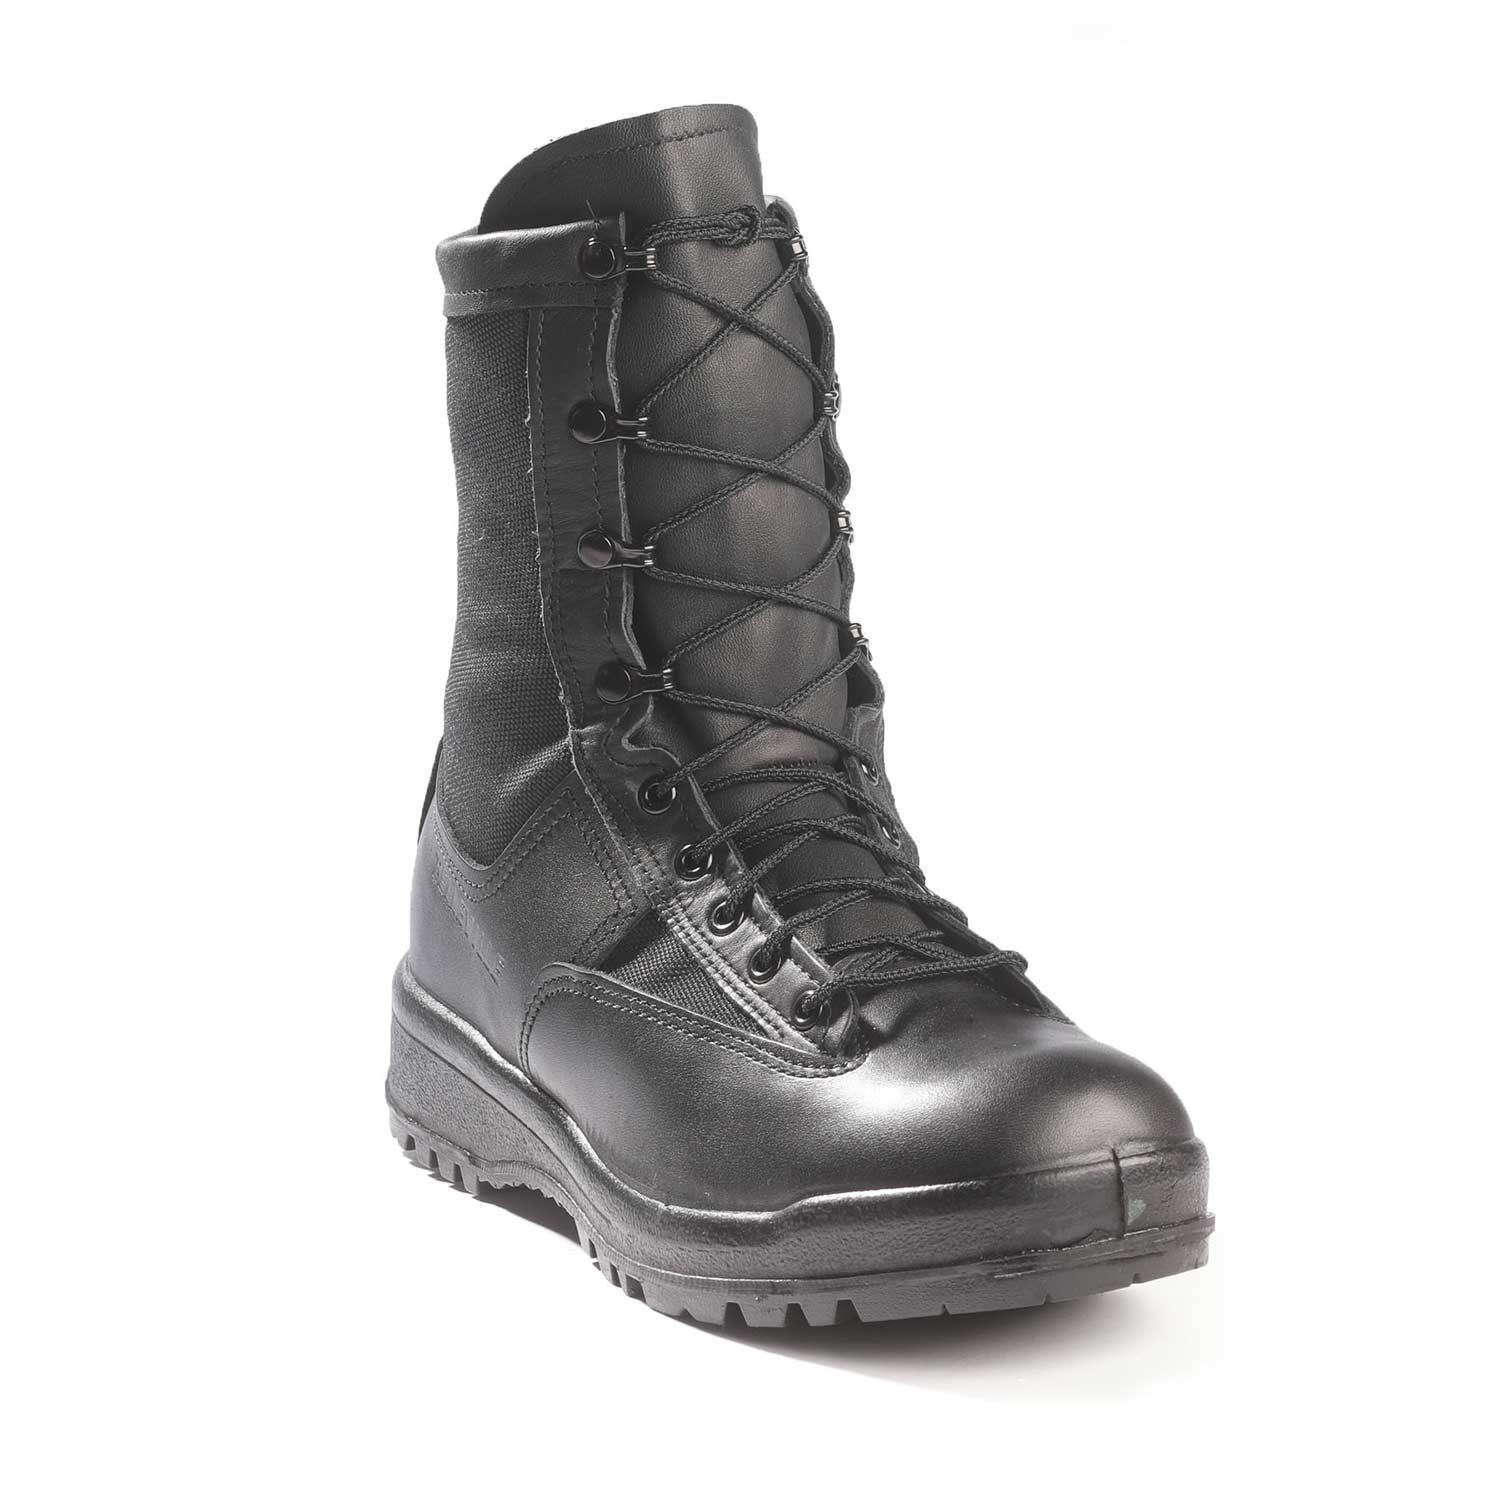 Belleville Waterproof 200g Insulated Boot